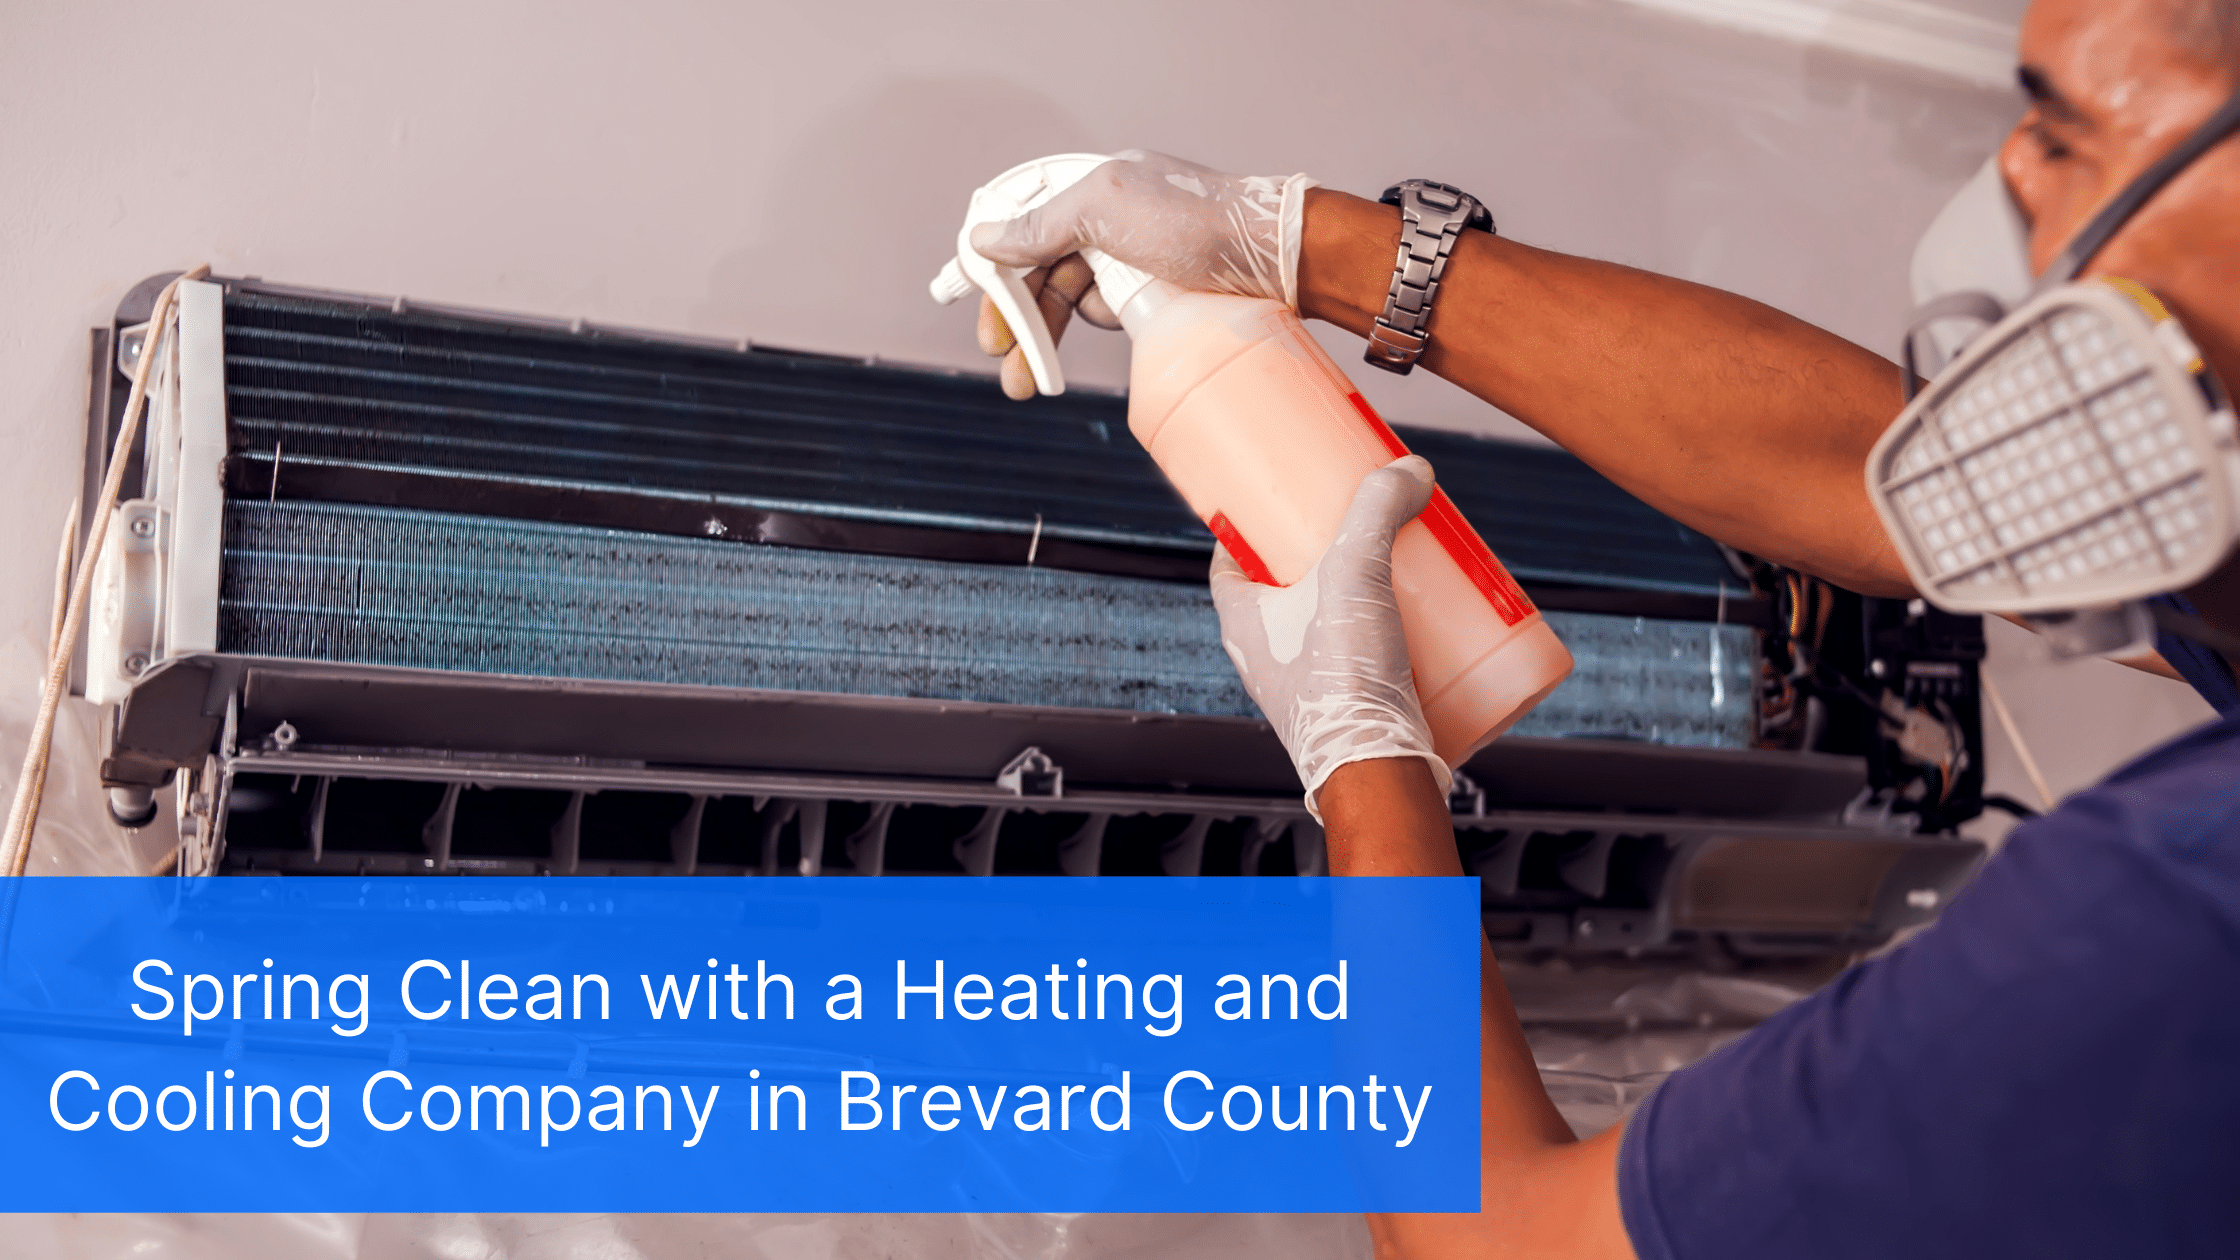 Spring Clean with a Heating and Cooling Company in Brevard County